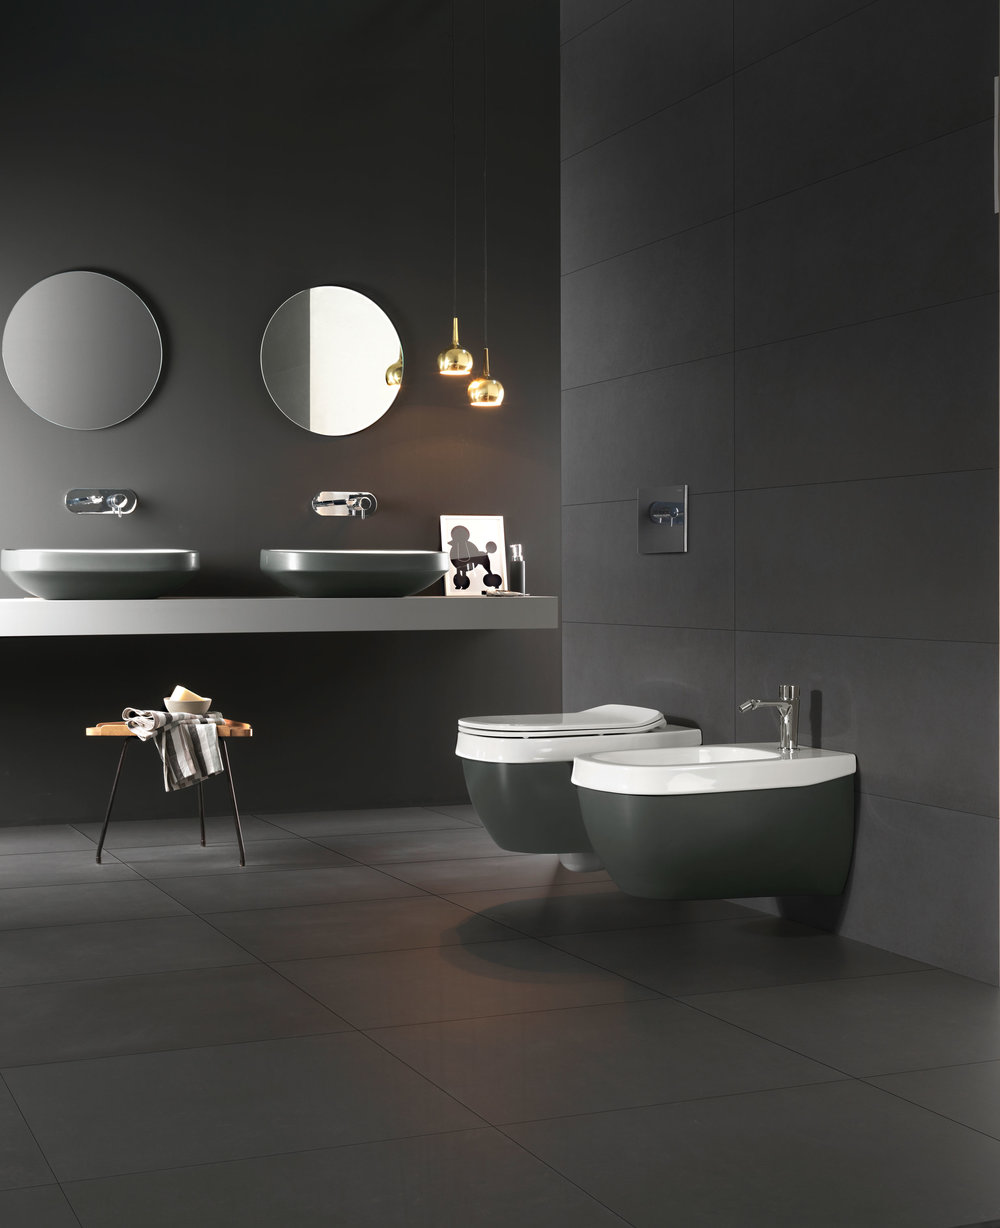 Michel César Hatria Abito black basins and wall-hung bidet and toilet.